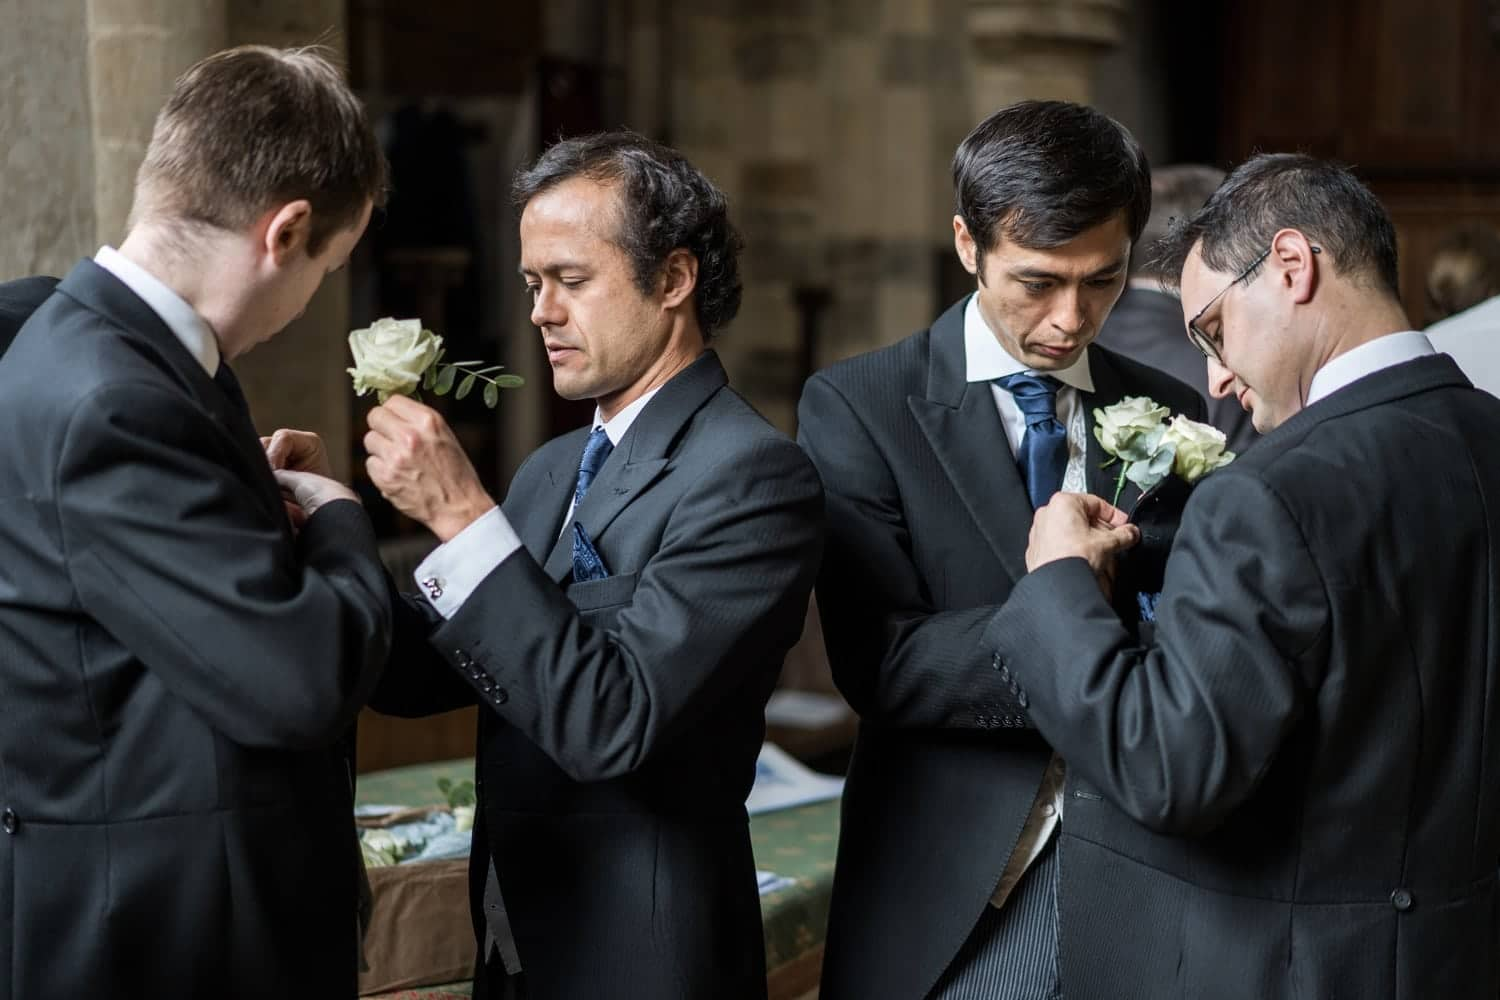 Groom and ushers put on flowers at Great Tew church for a Cotswold wedding